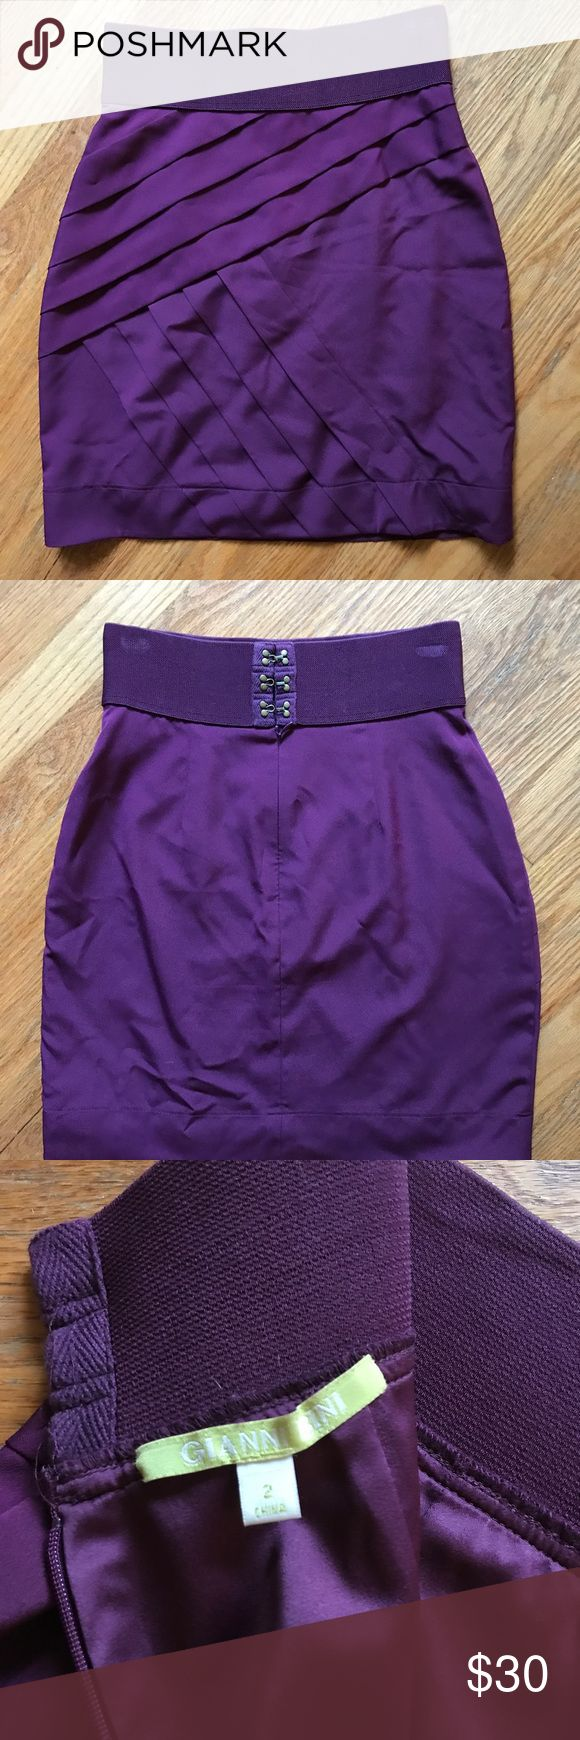 Deep purple pencil skirt Gianni bini pencil skirt. Extremely flattering. Skirts Pencil